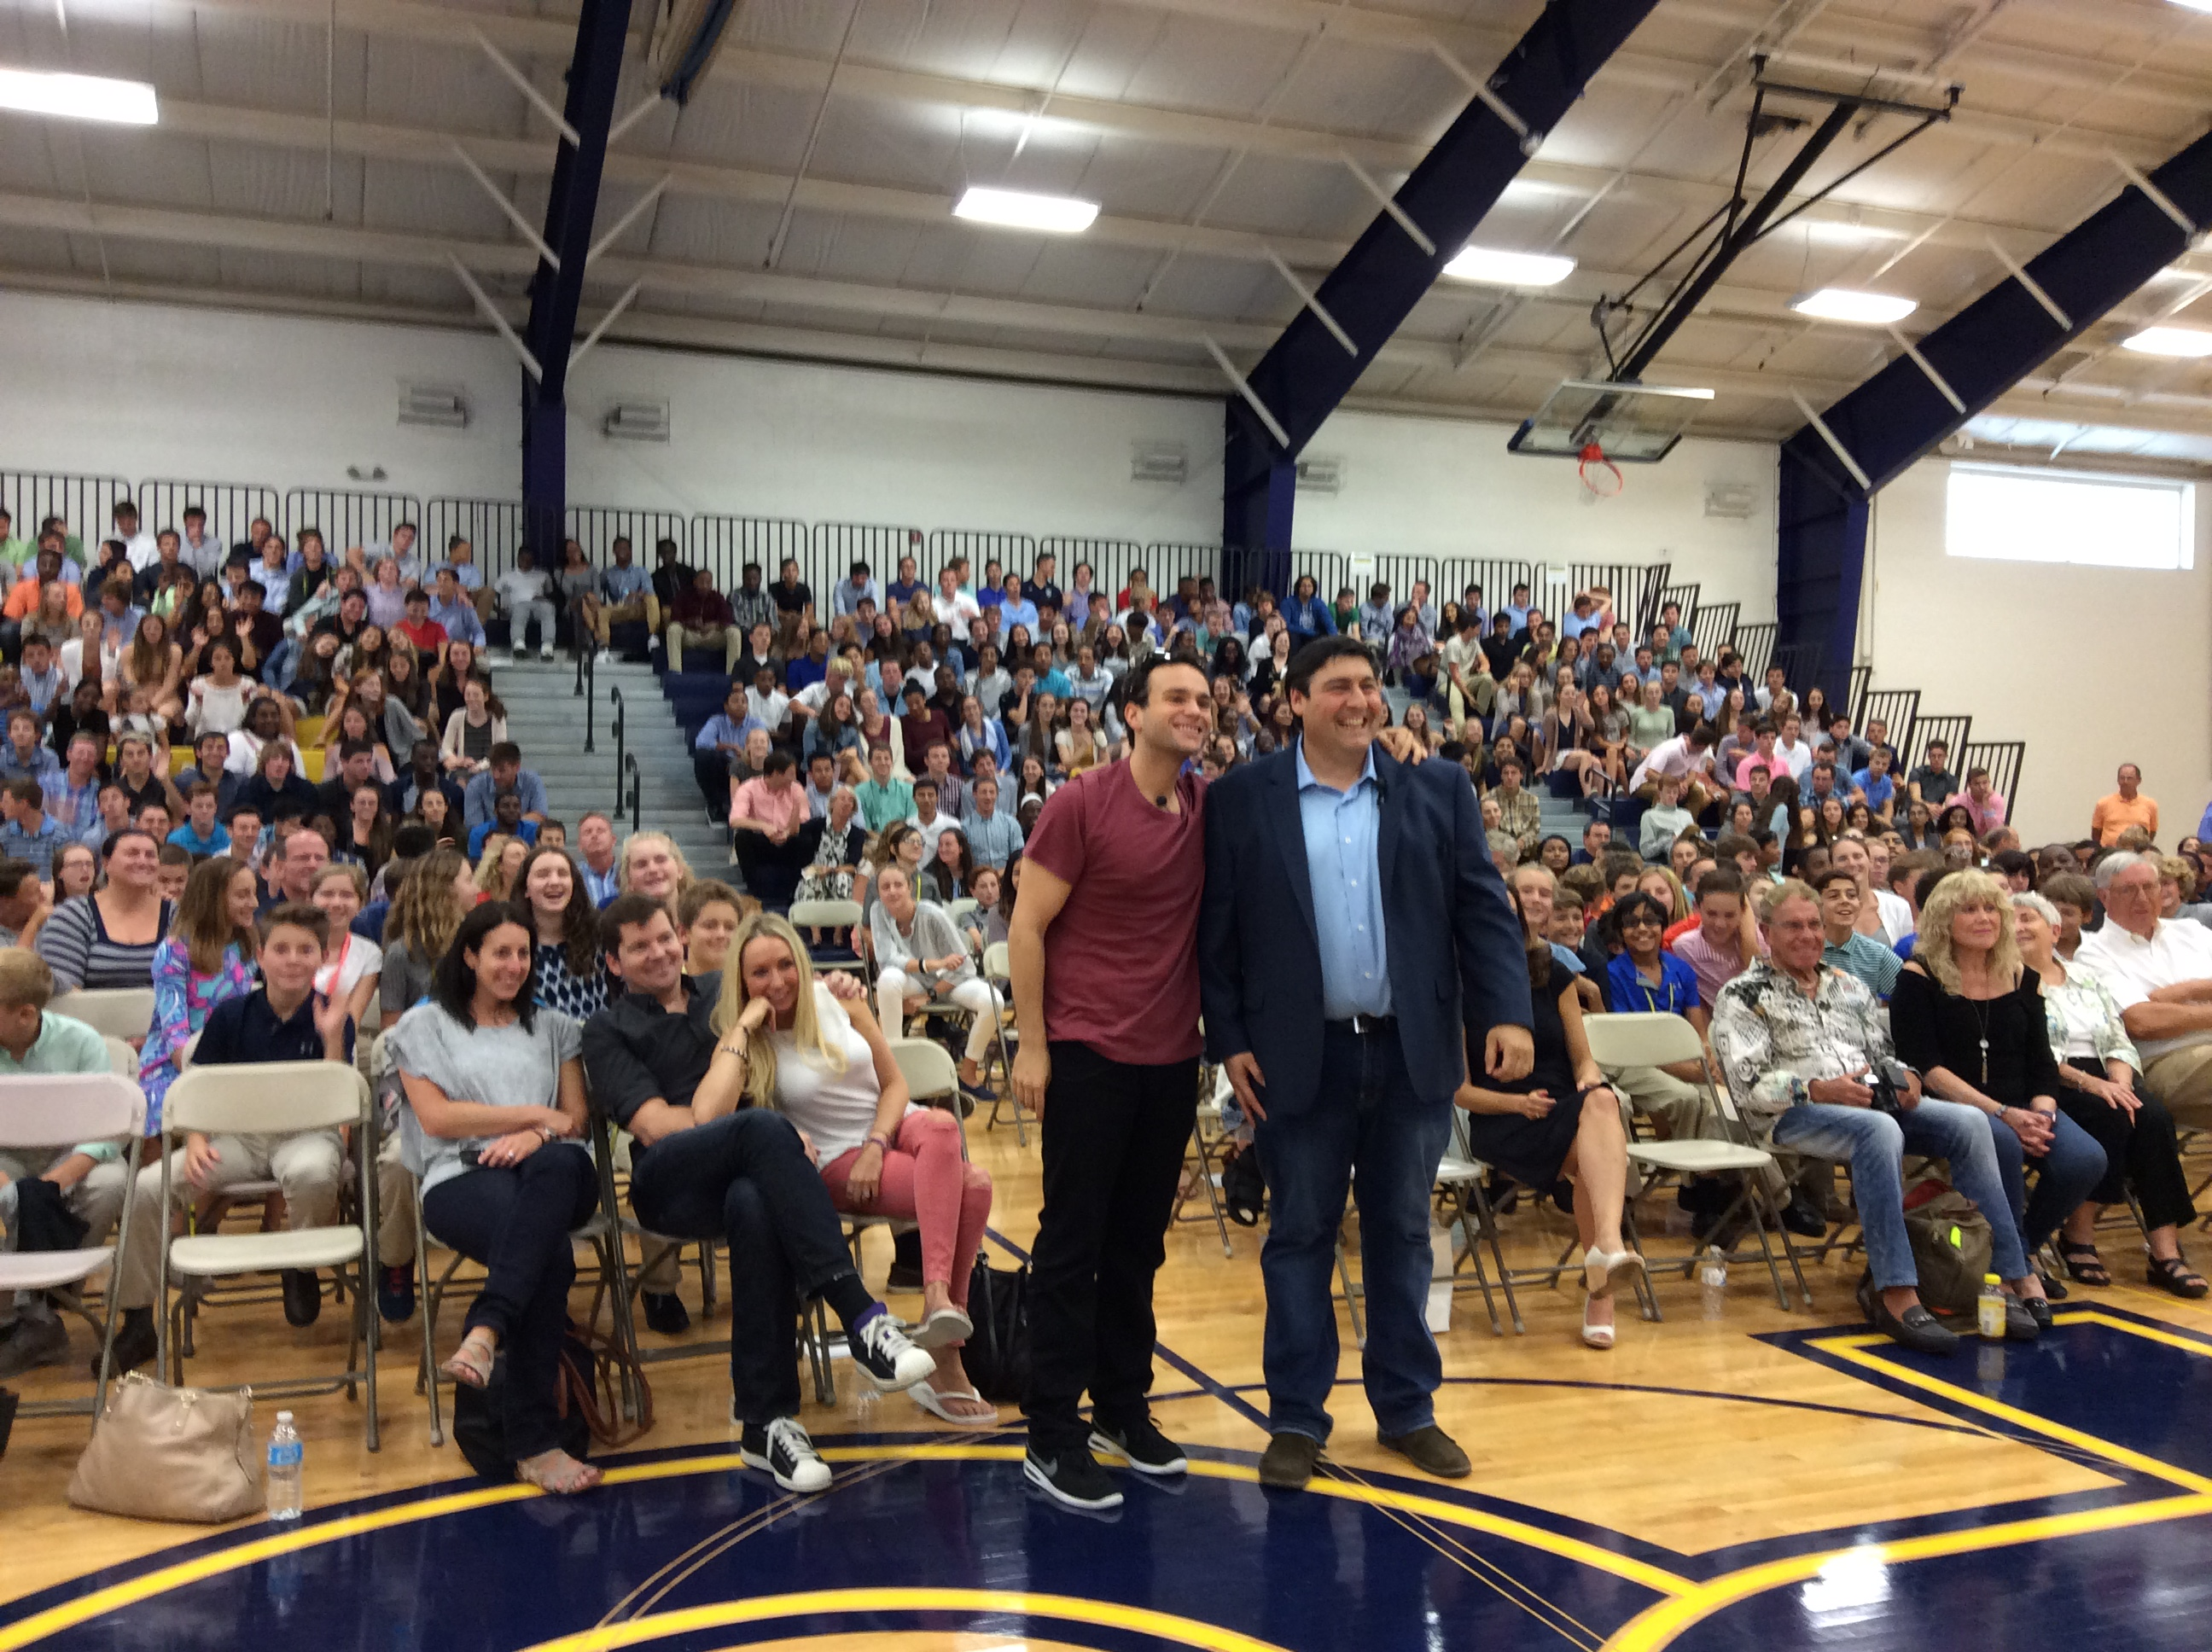 Troy Gentile and Adam F. Goldberg at Penn Charter